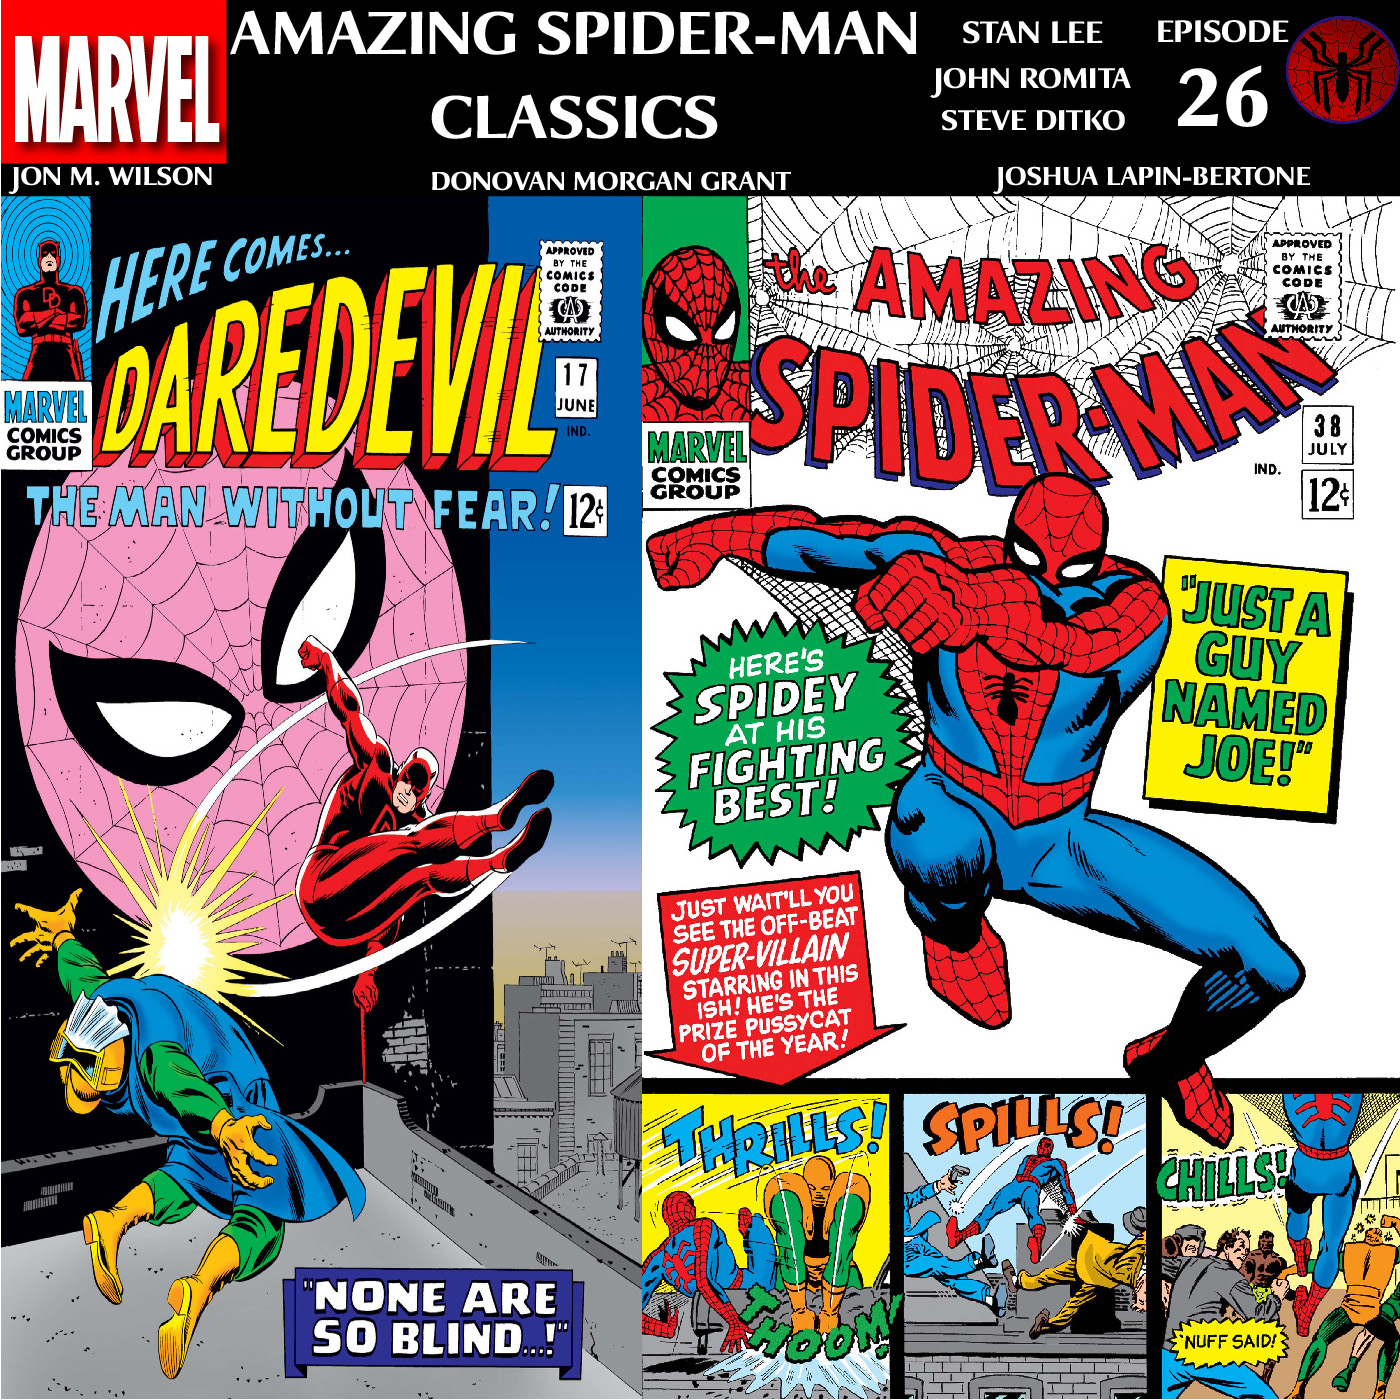 ASM Classics Episode 26: Daredevil 17 & Amazing Spider-Man 38